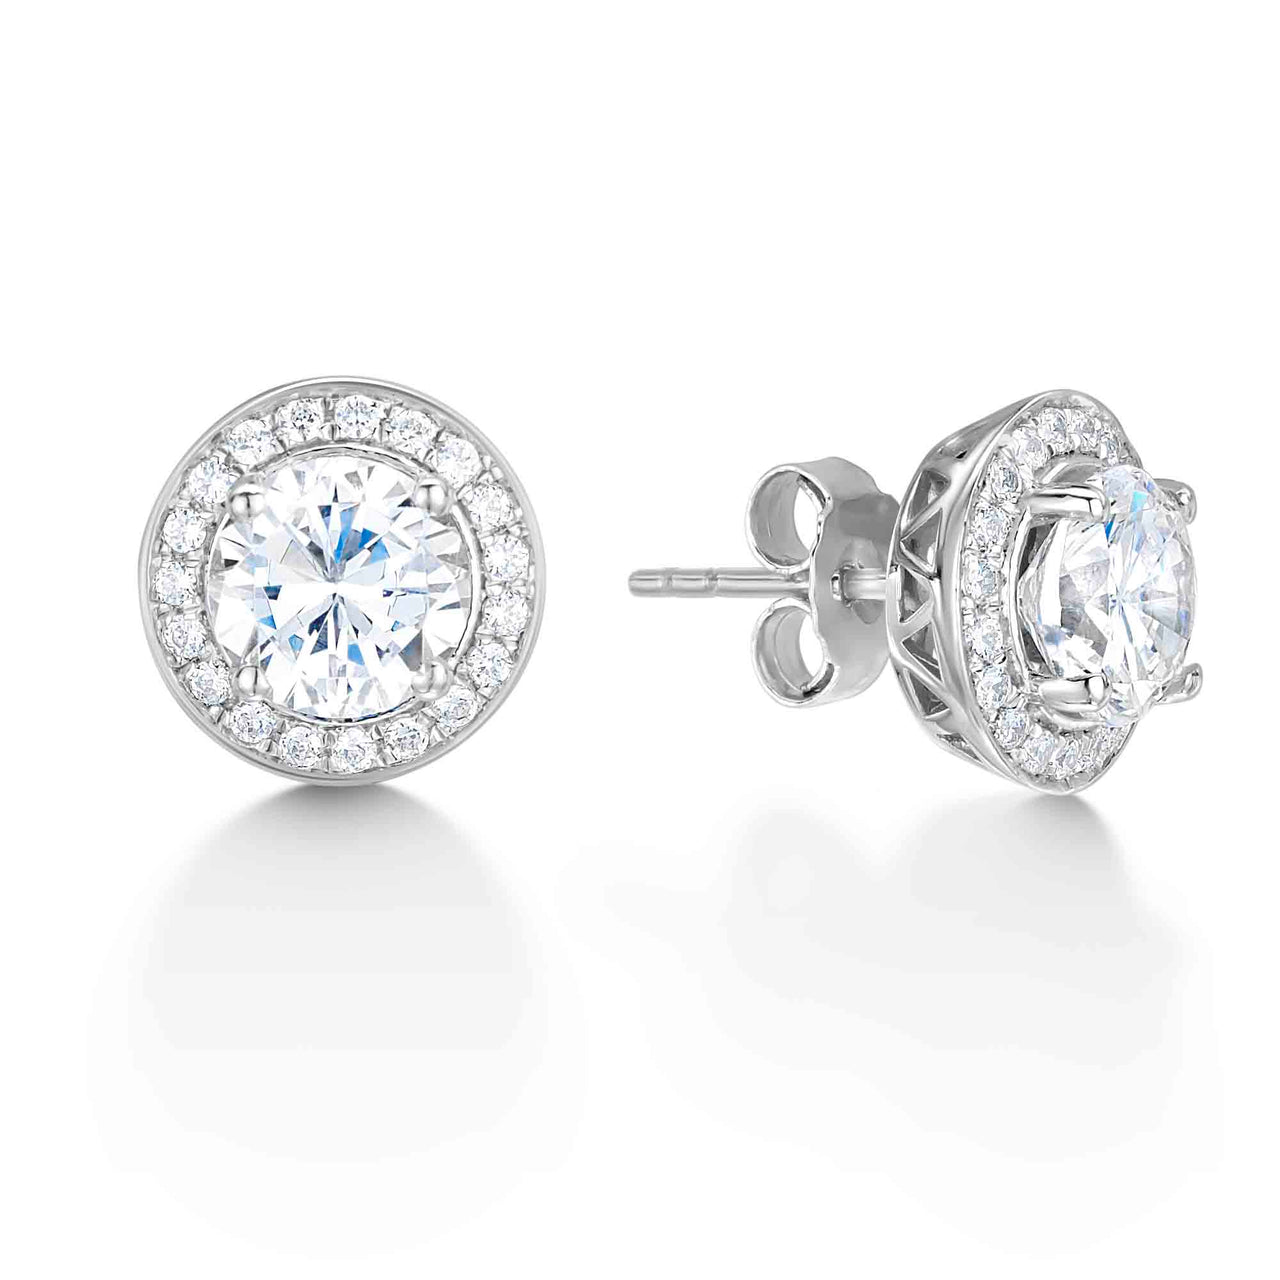 Vintage Surround Diamond Stud Earrings